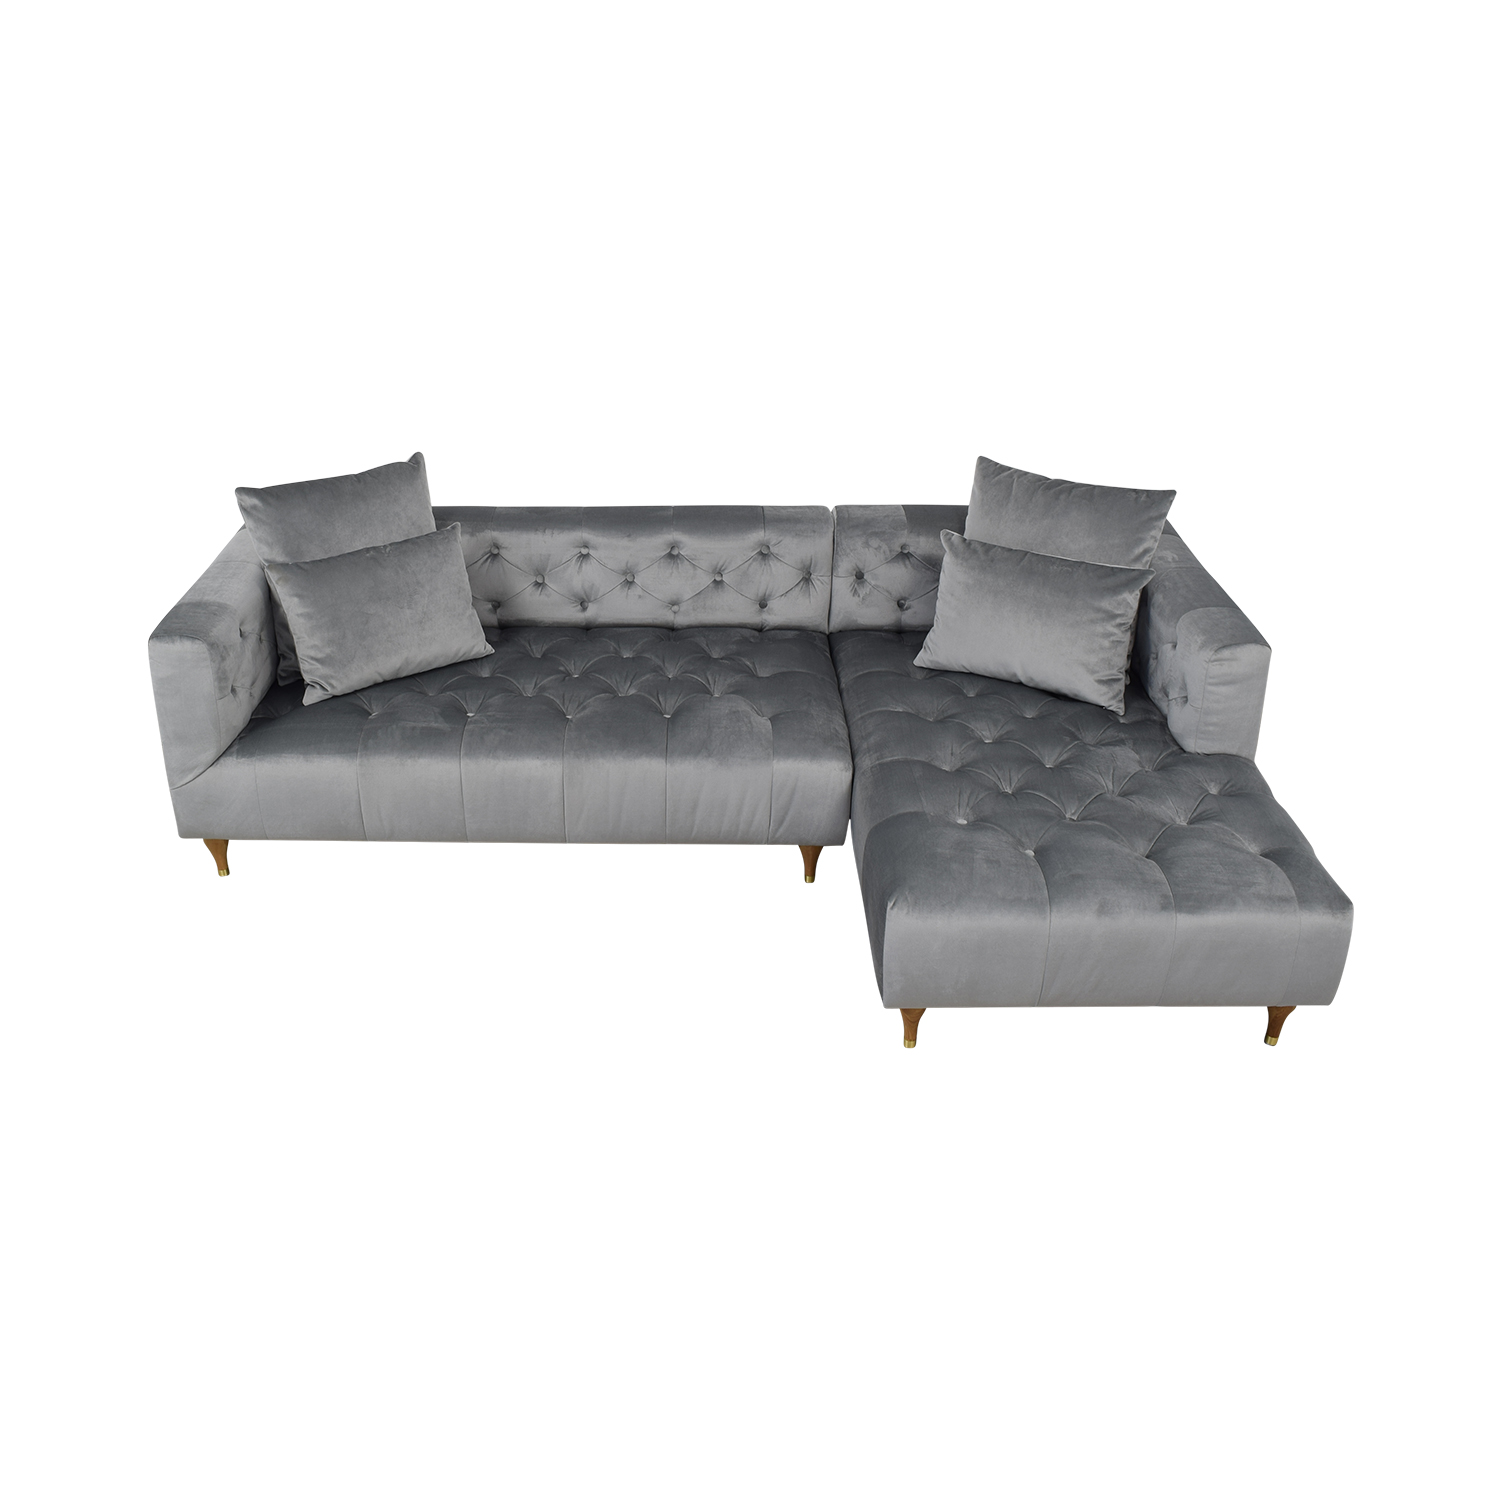 Interior Define Ms. Chesterfield Light Grey Tufted Right Chaise Sectional